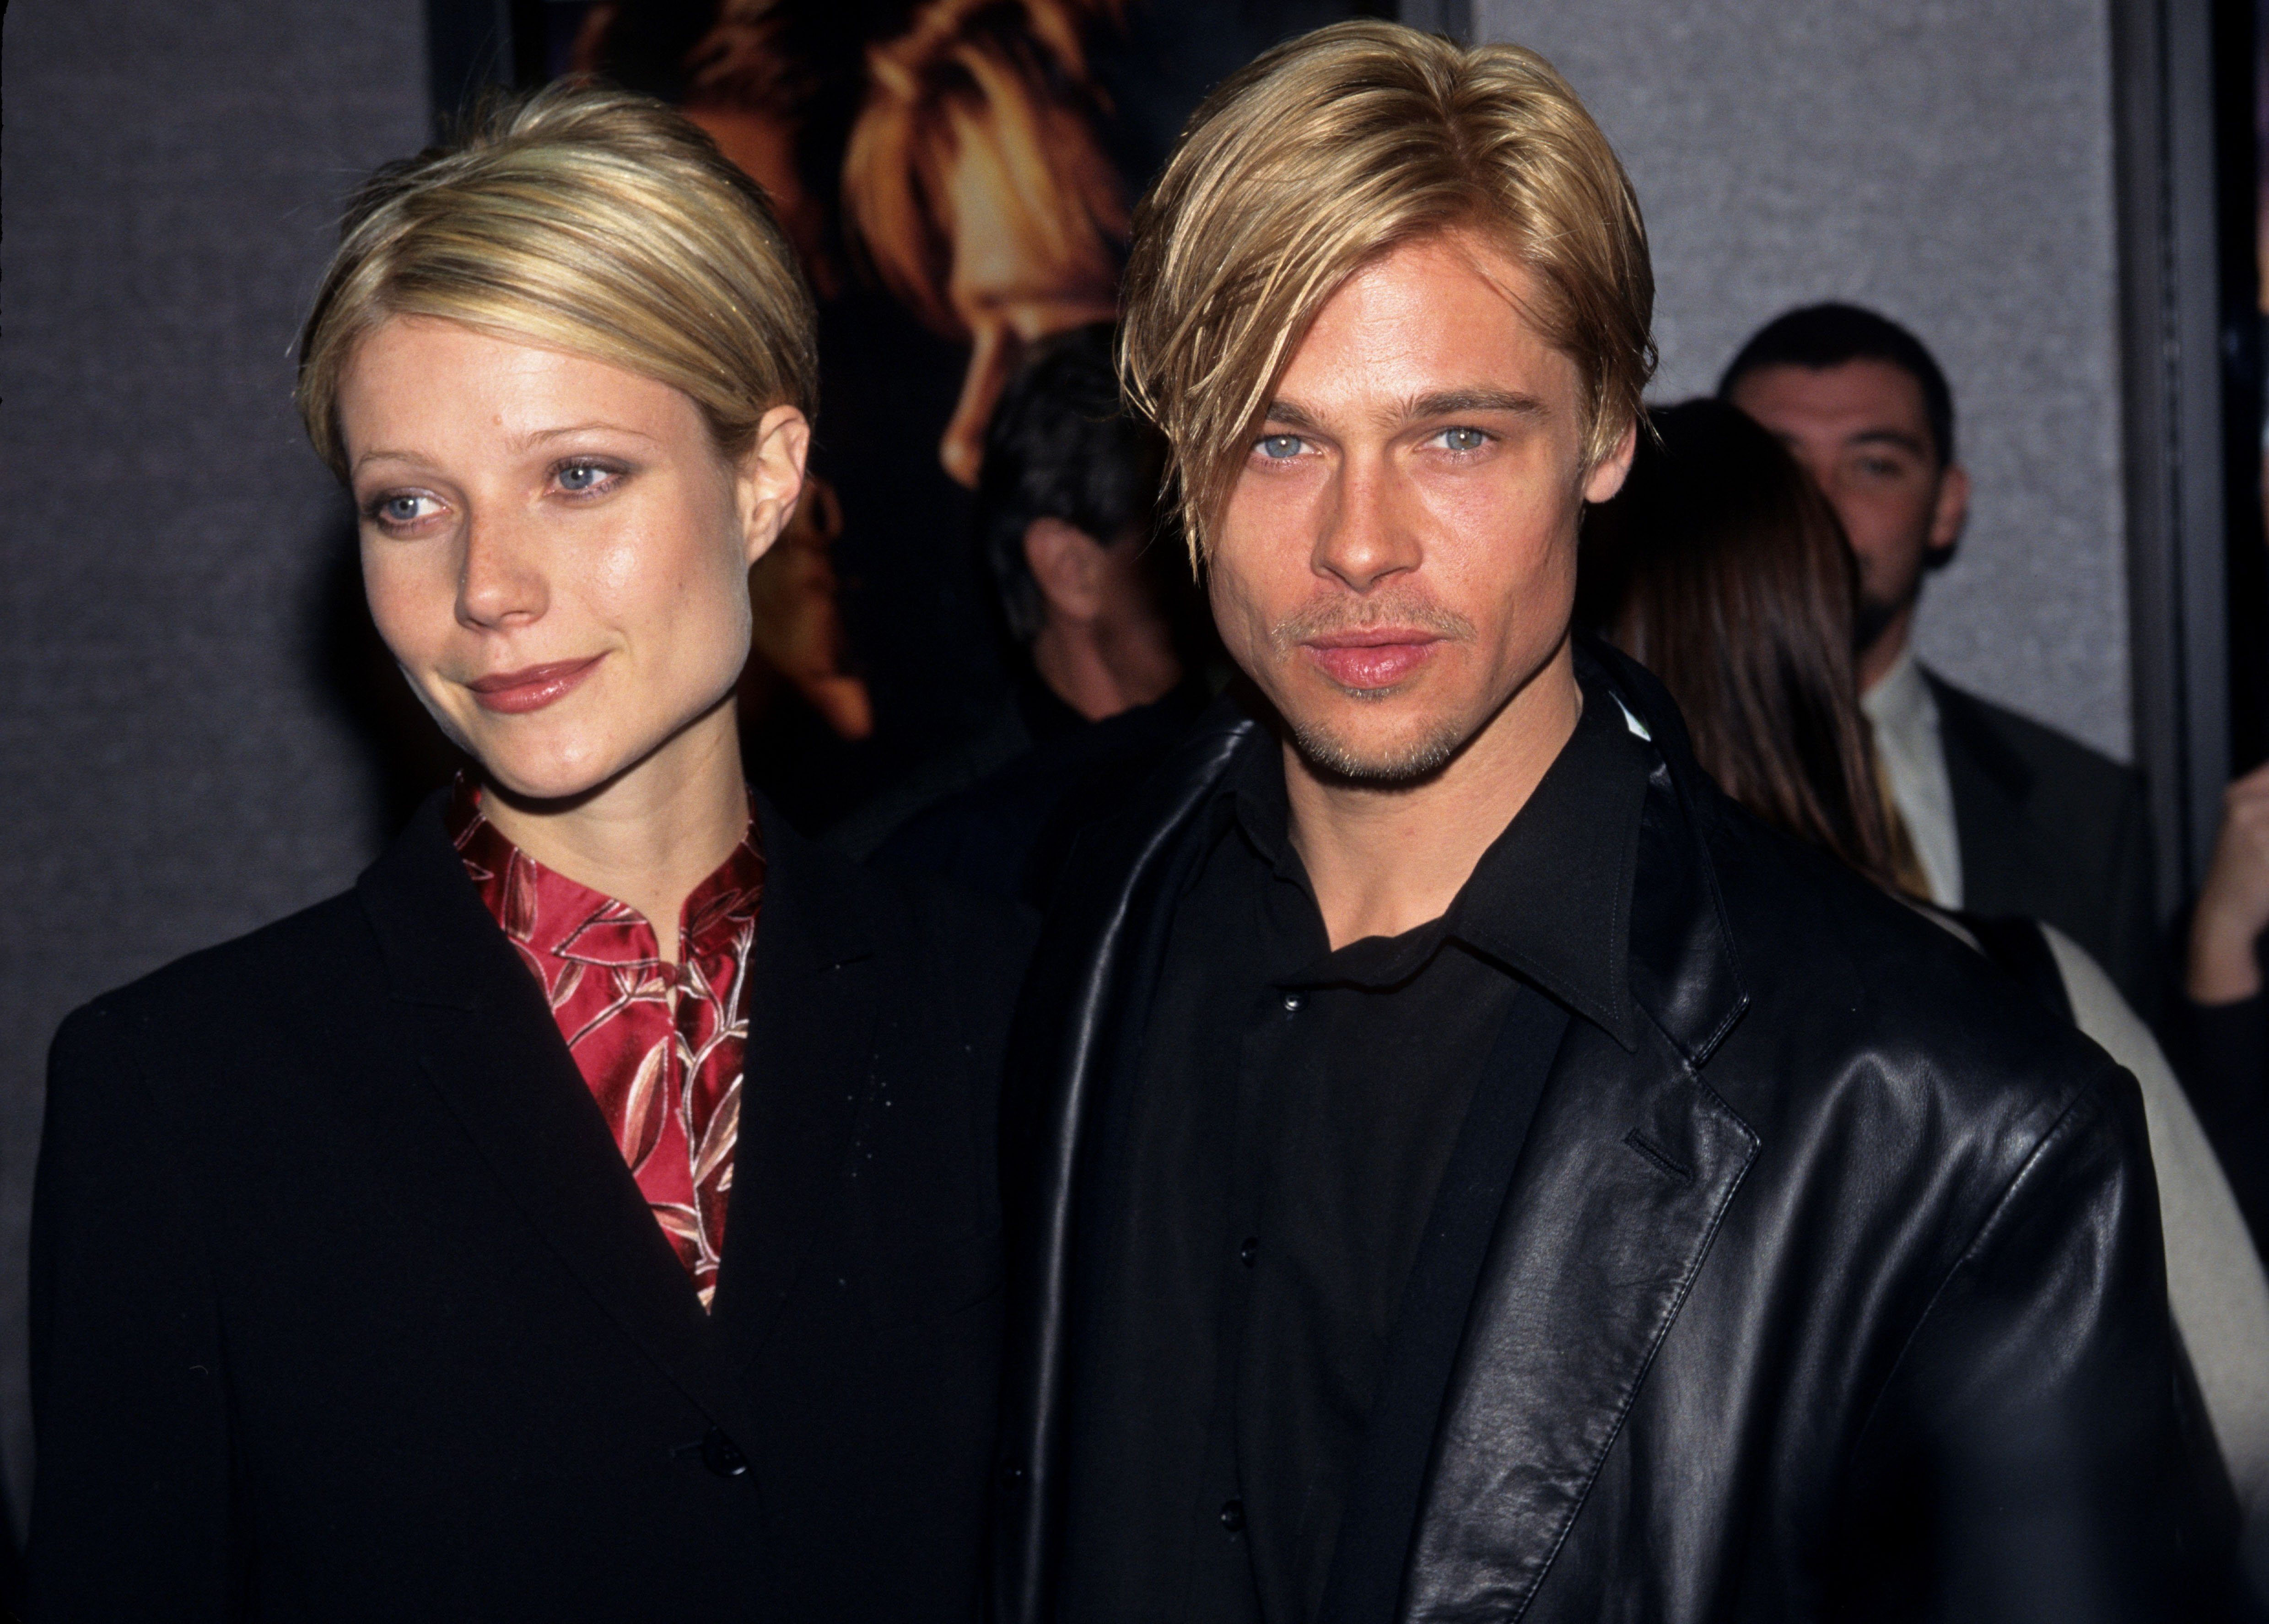 A portrait of actress Gwyneth Paltrow and actor Brad Pitt Source | Photo: Getty Images